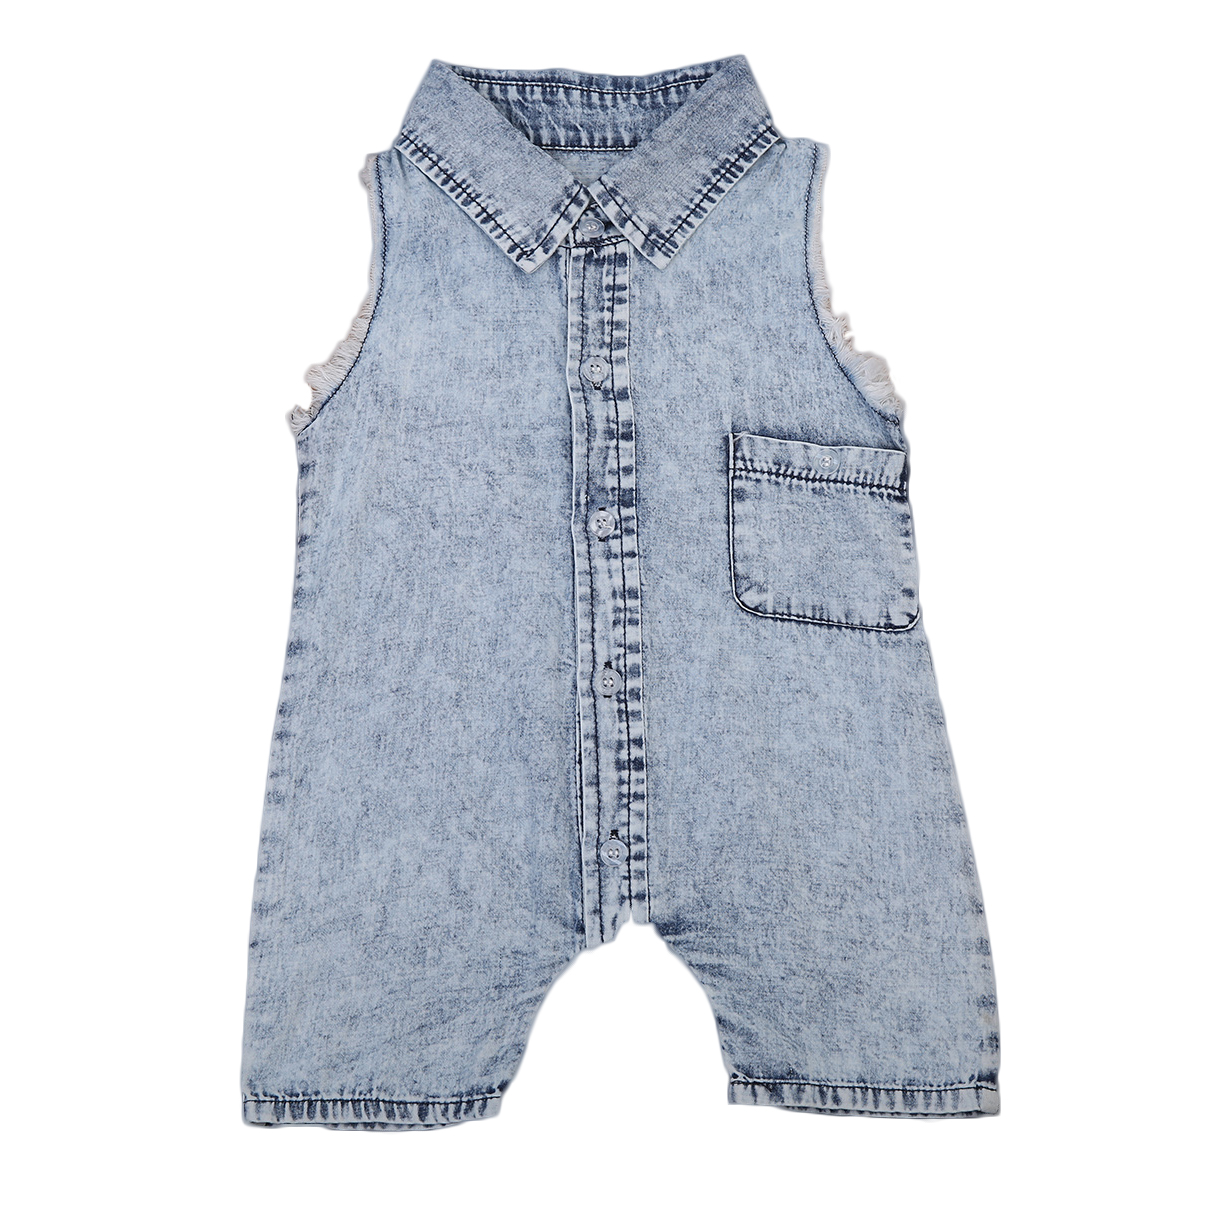 2017 Summer Denim Newborn Baby Boys Sleeveless Romper Infant Boy Girl Jumpsuit Clothes Outfit 2017 new adorable summer games infant newborn baby boy girl romper jumpsuit outfits clothes clothing